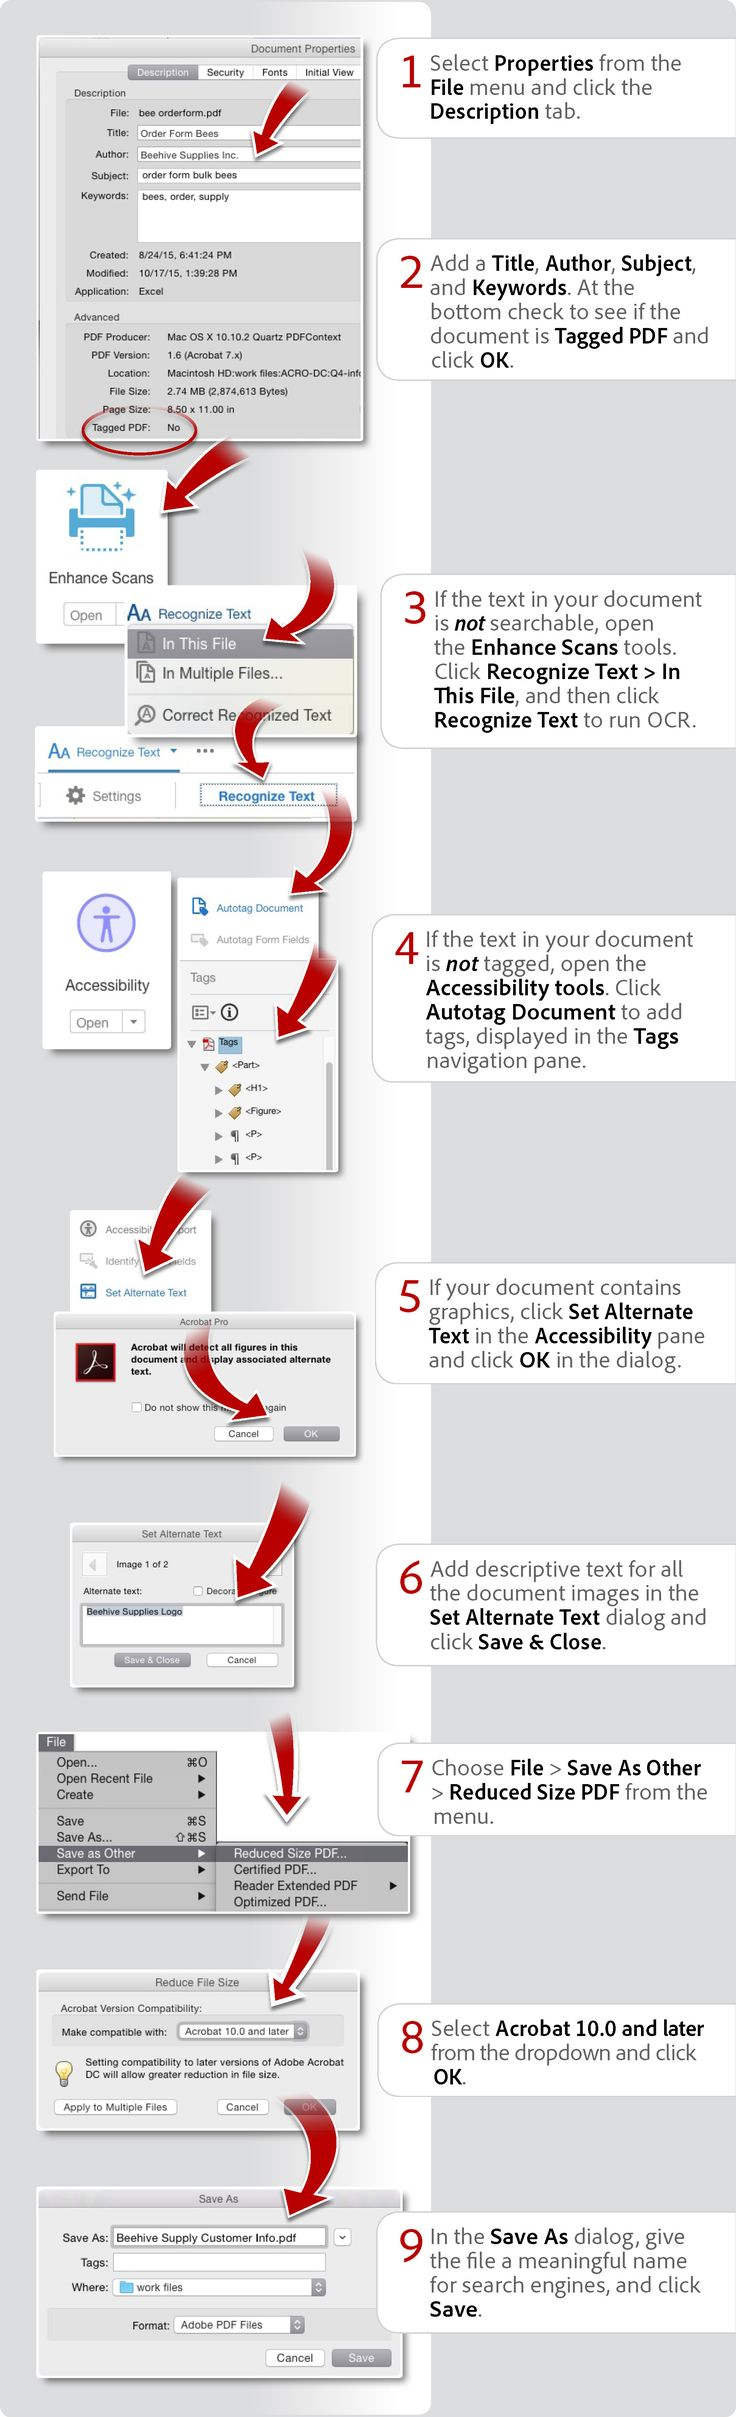 How to optimize a pdf for seo using acrobat pro dc